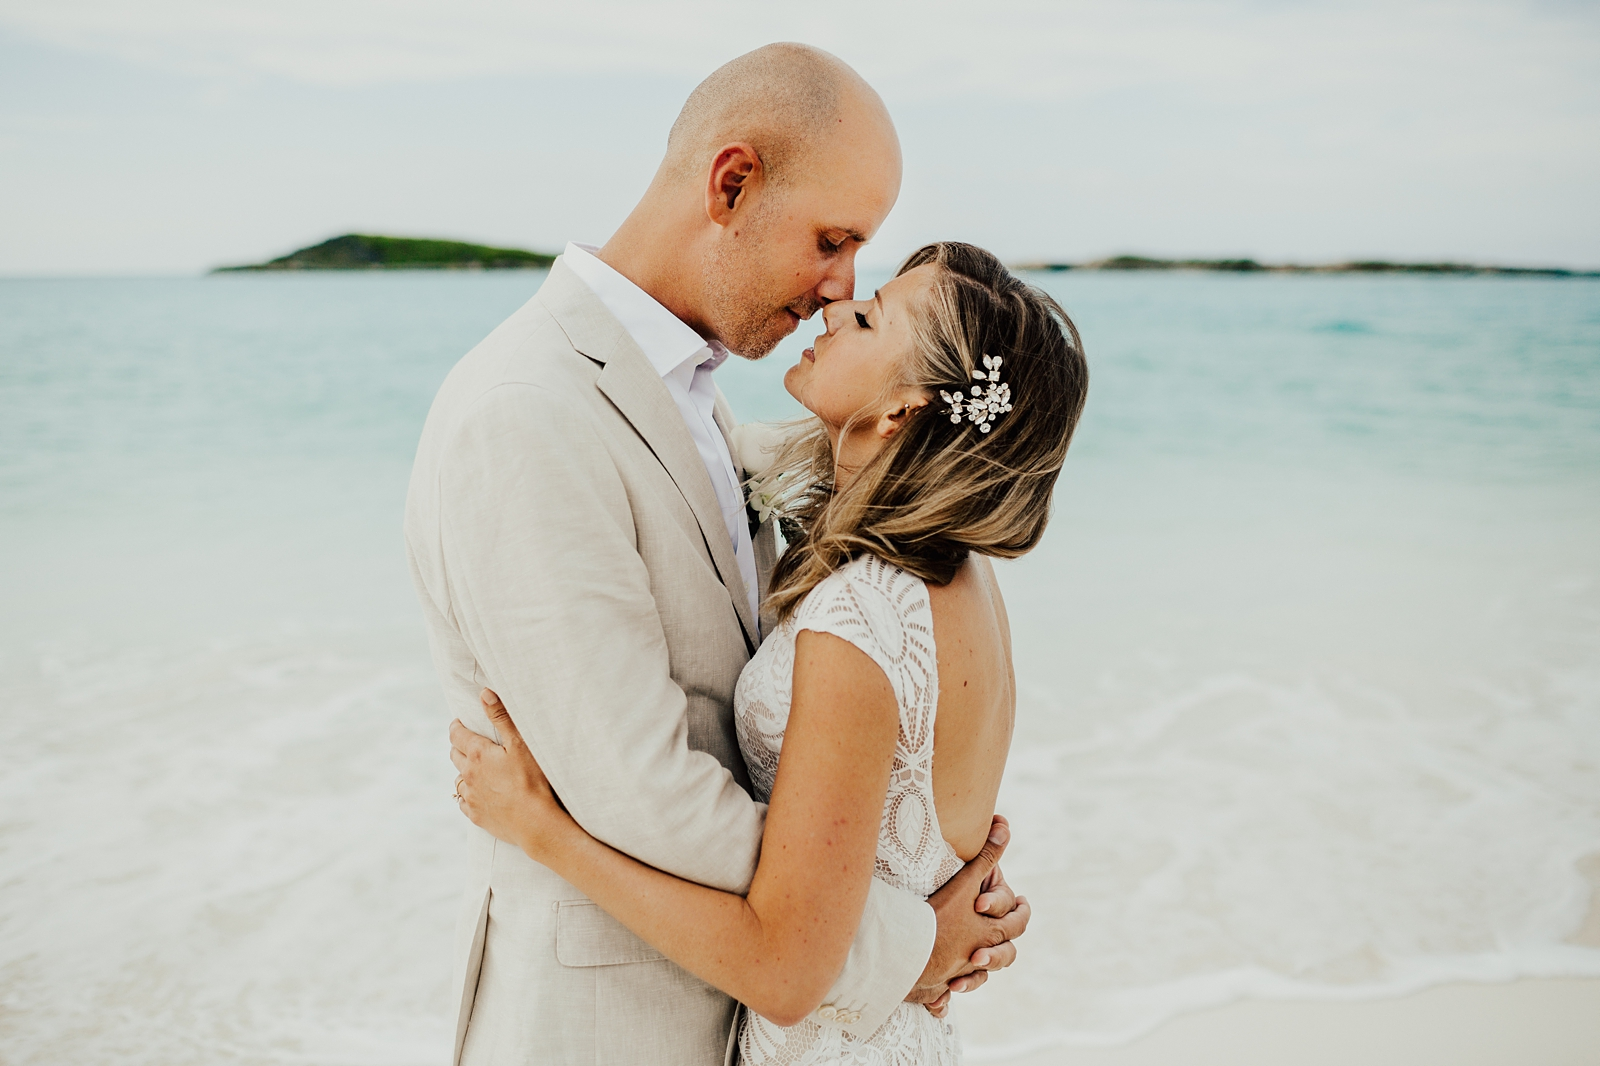 Jenni & Andrew Intimate Beach Destination Wedding in Little Exuma, Bahamas_0490.jpg